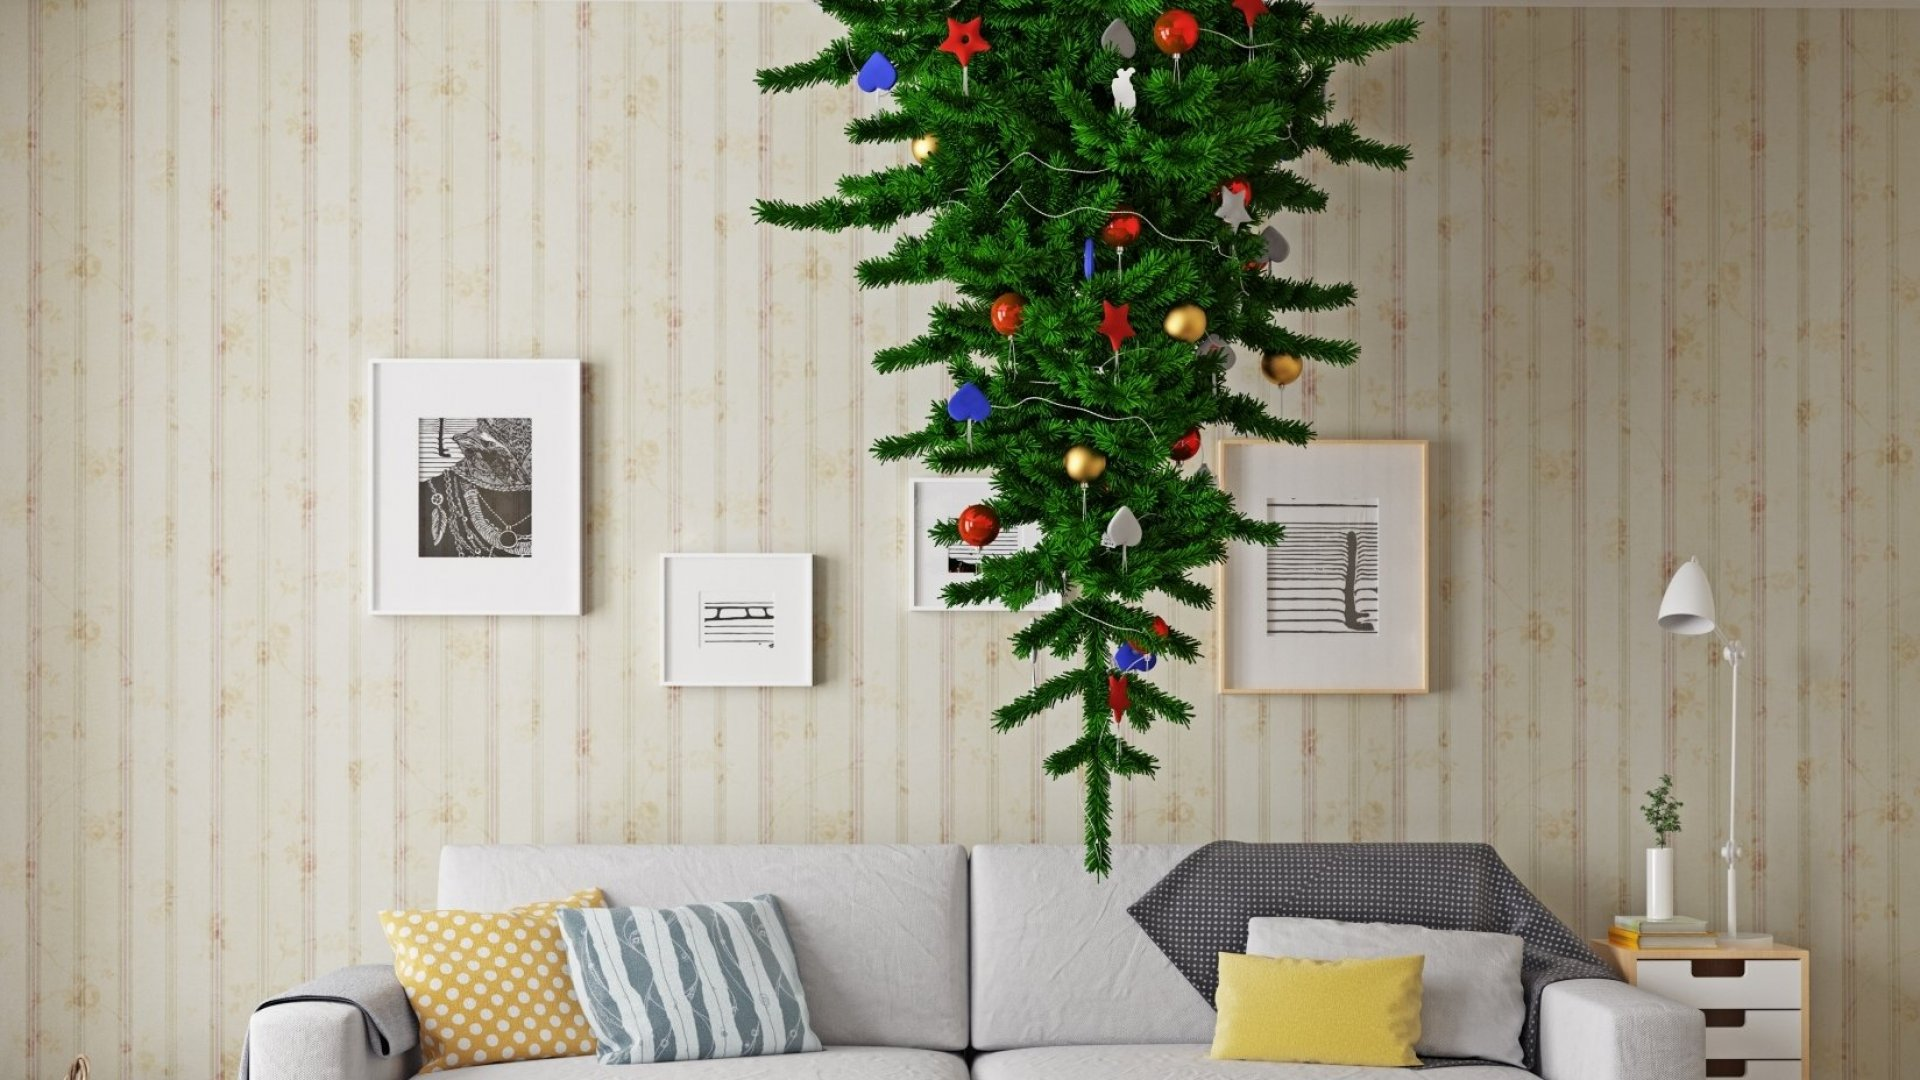 Upside Down Christmas Trees Are Ridiculous Here S Why You Might Want One Anyway Inc Com